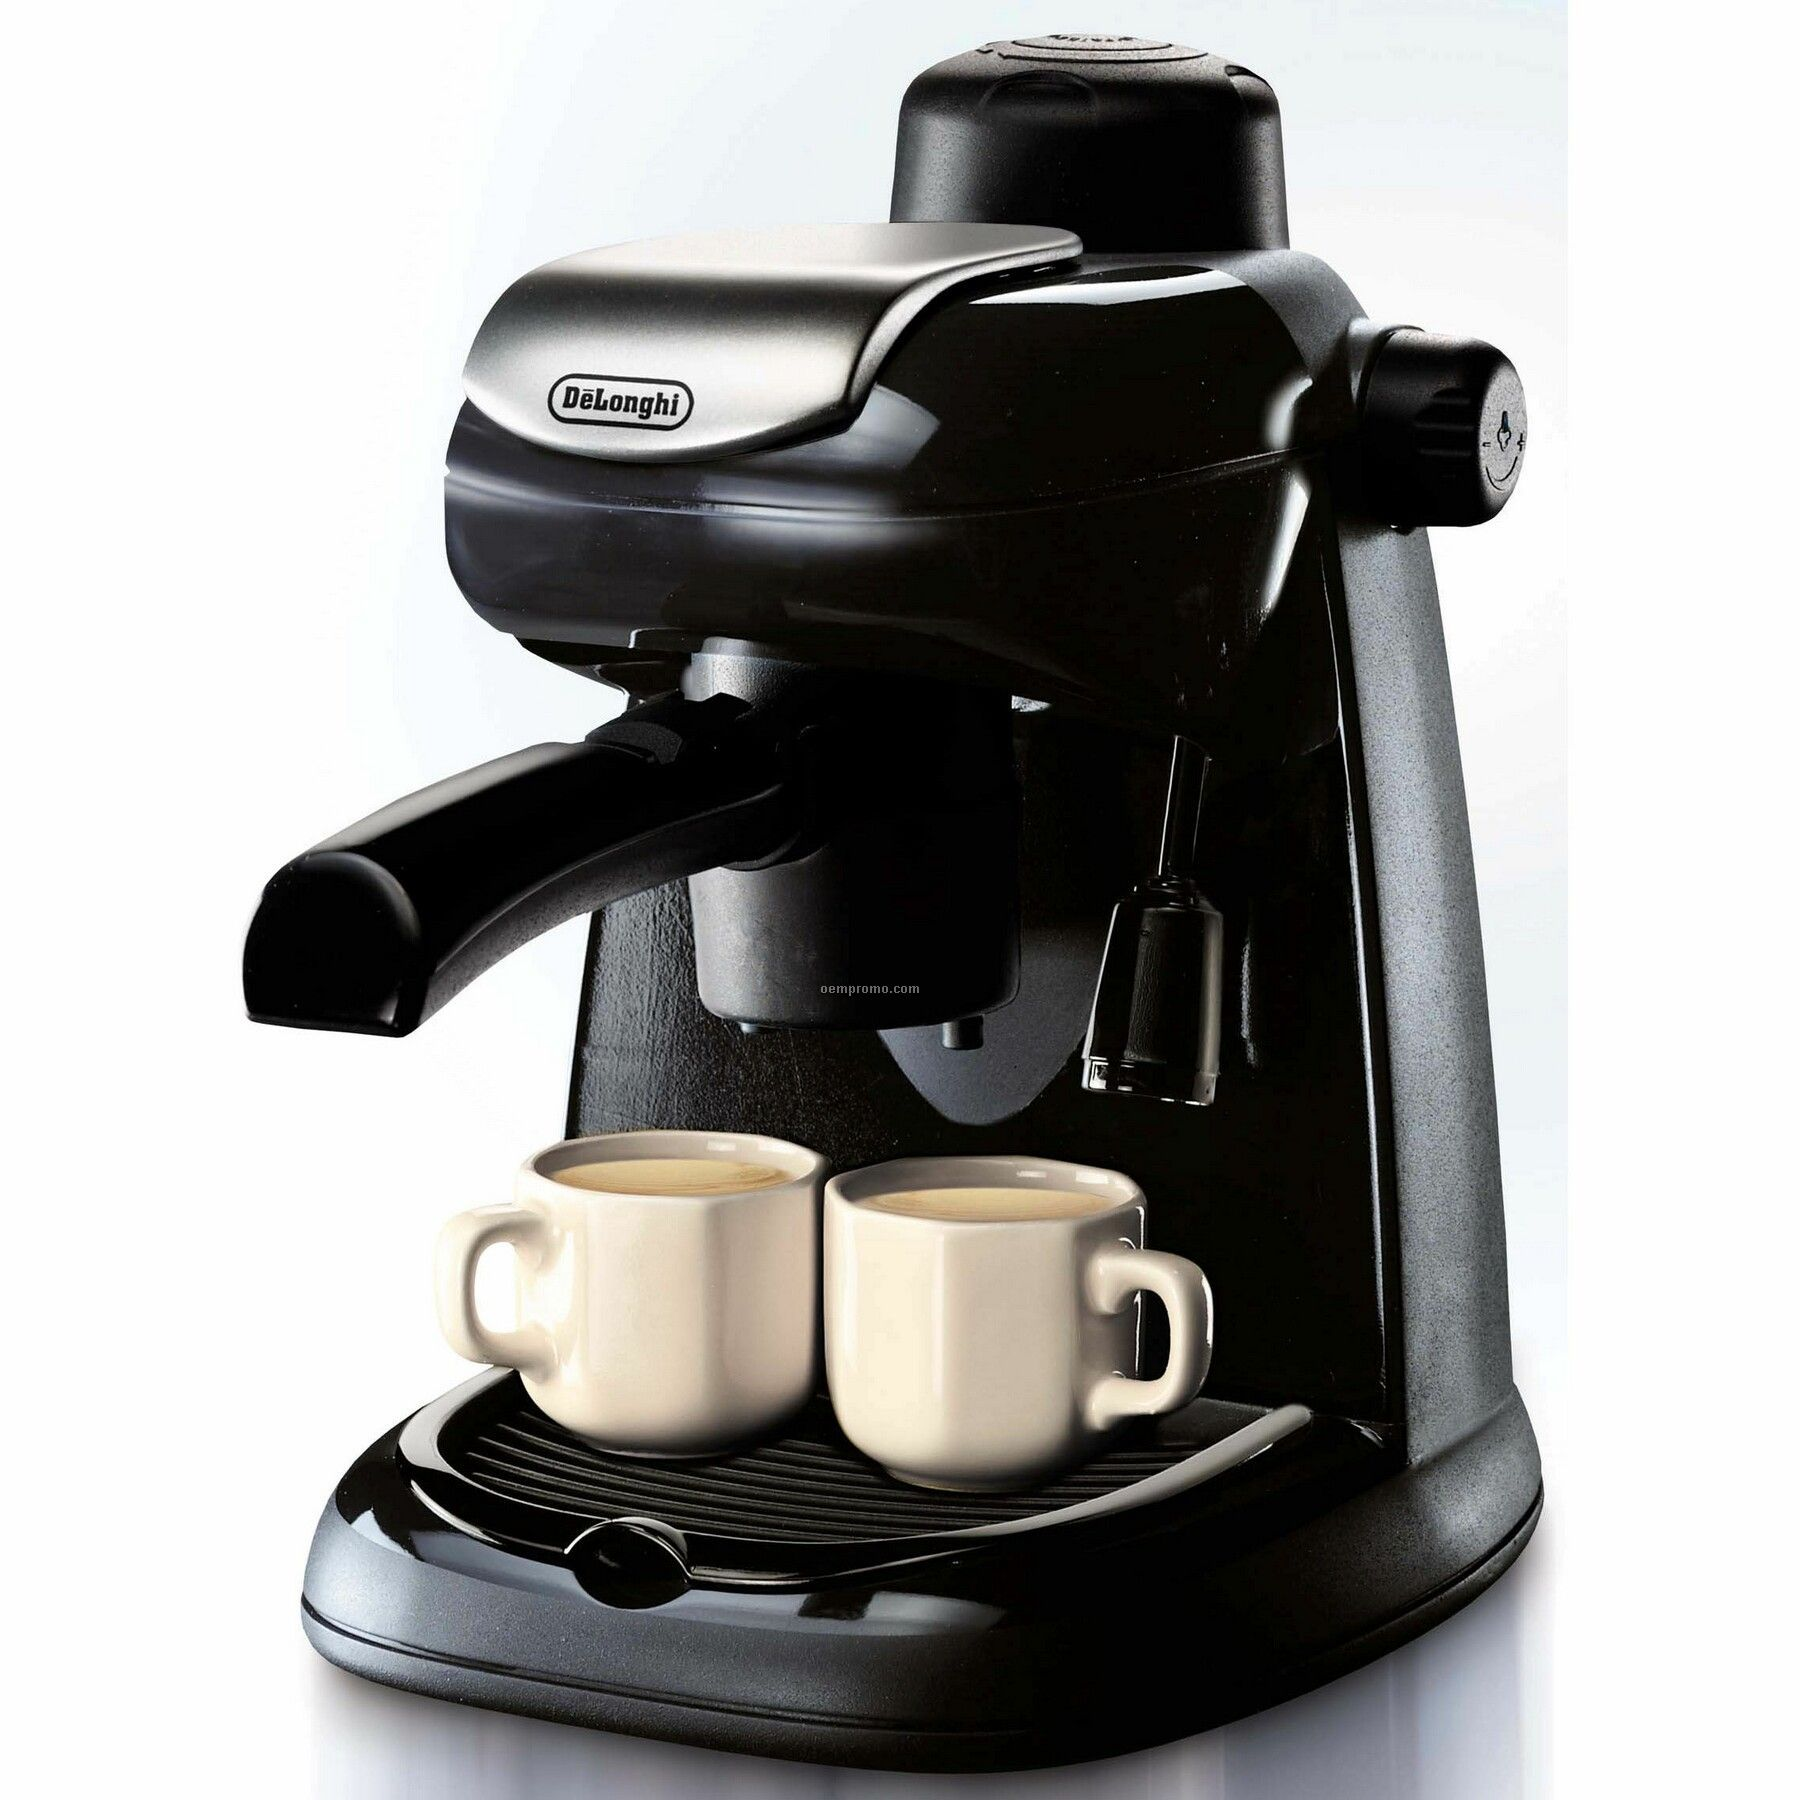 delonghi 4 cup espresso and cappuccino maker china. Black Bedroom Furniture Sets. Home Design Ideas